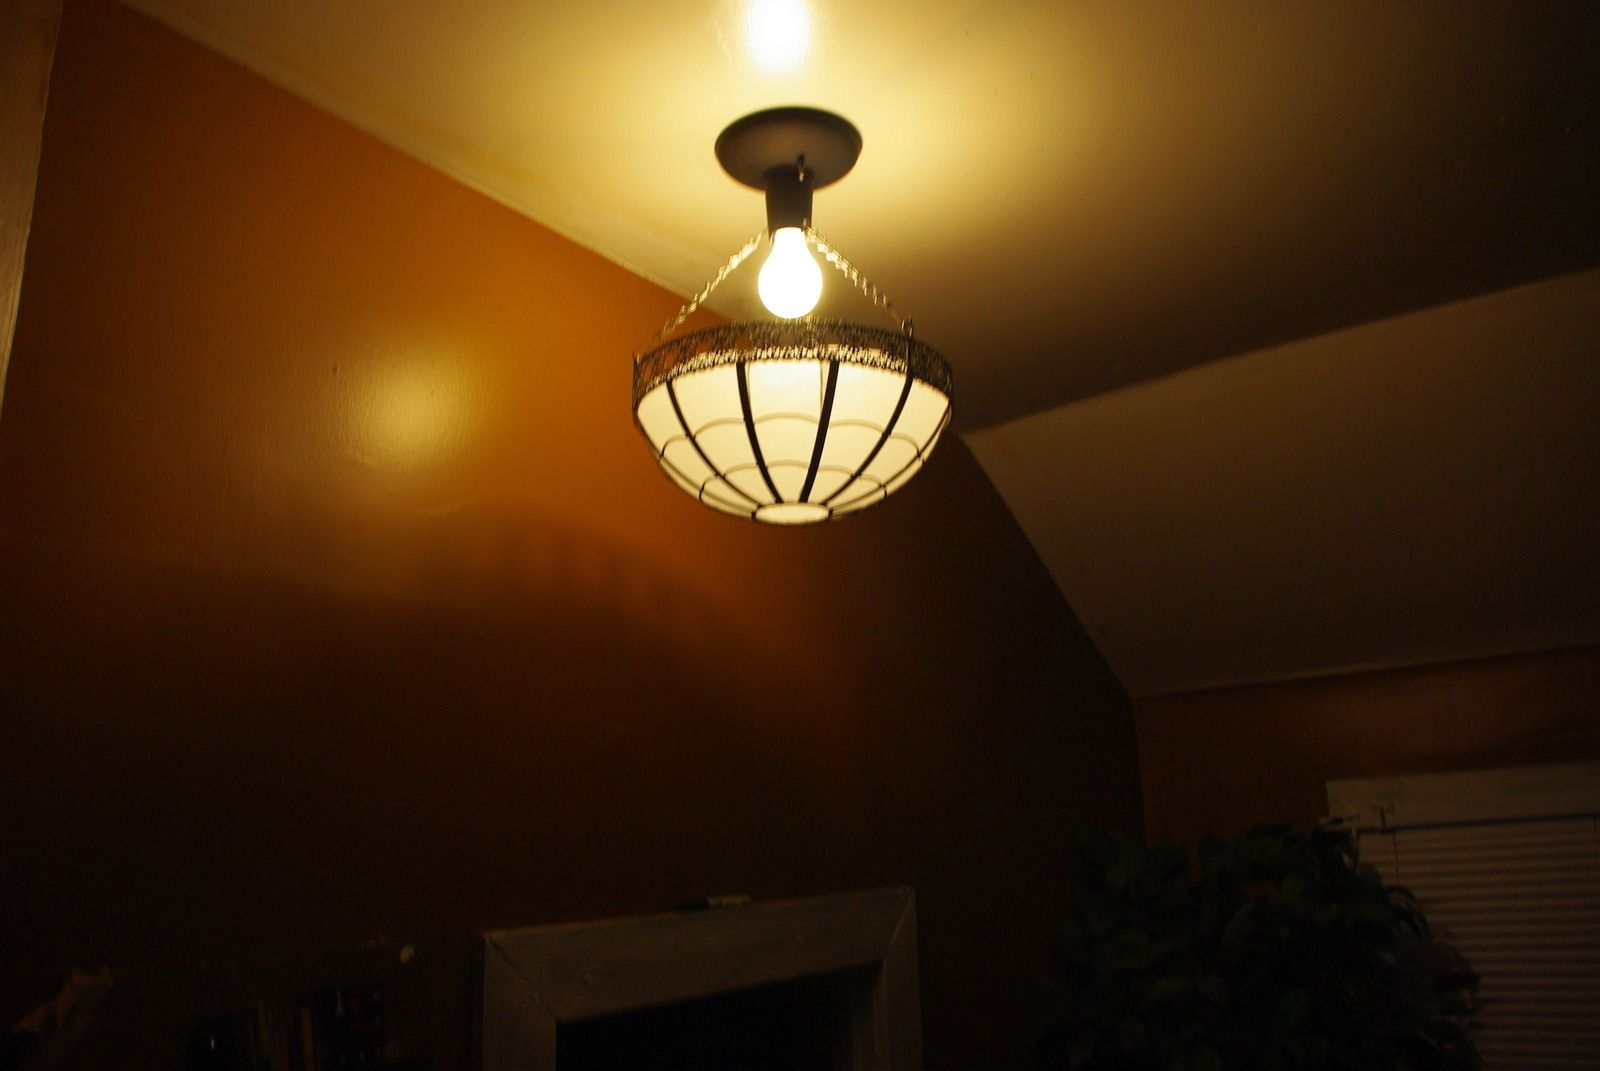 Ceiling Light Fixture Cheap! (With images) Colorful lamp